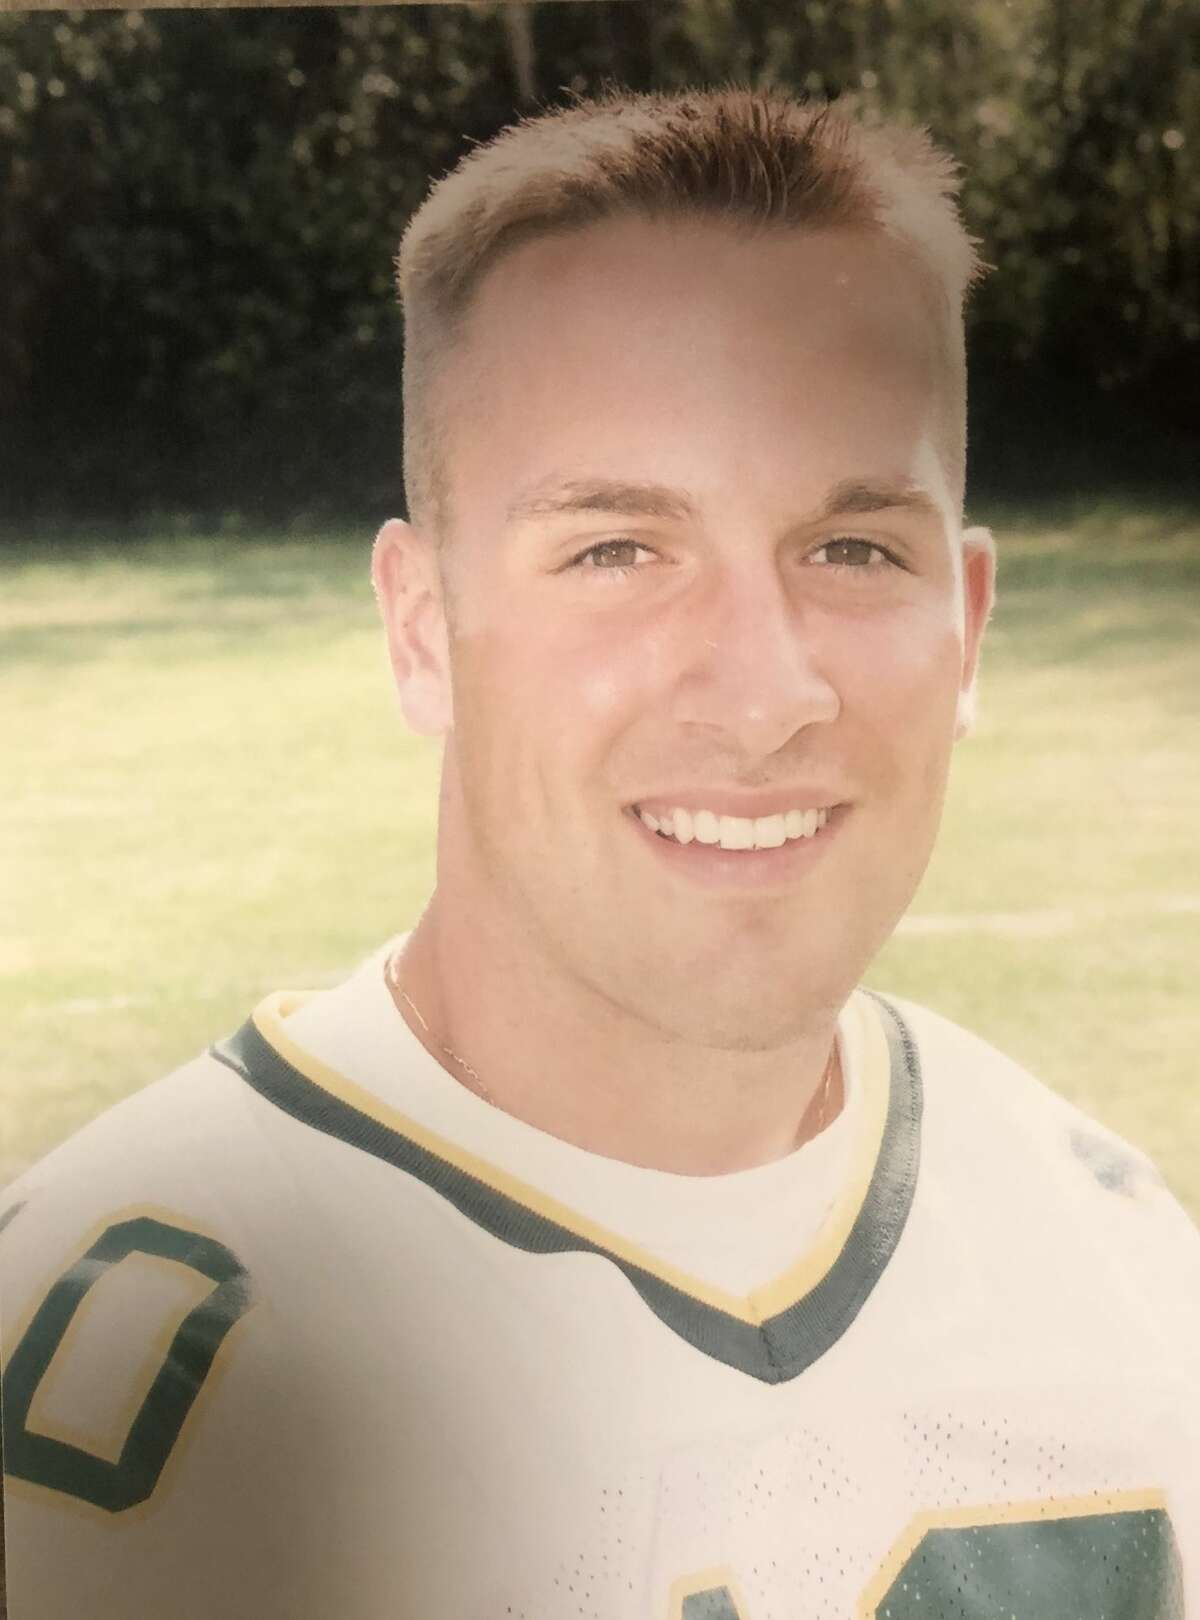 New Boston College football coach Jeff Hafley dealt with leg injuries during his Siena football career from 1997 to 2000. (Siena athletic communiciations)